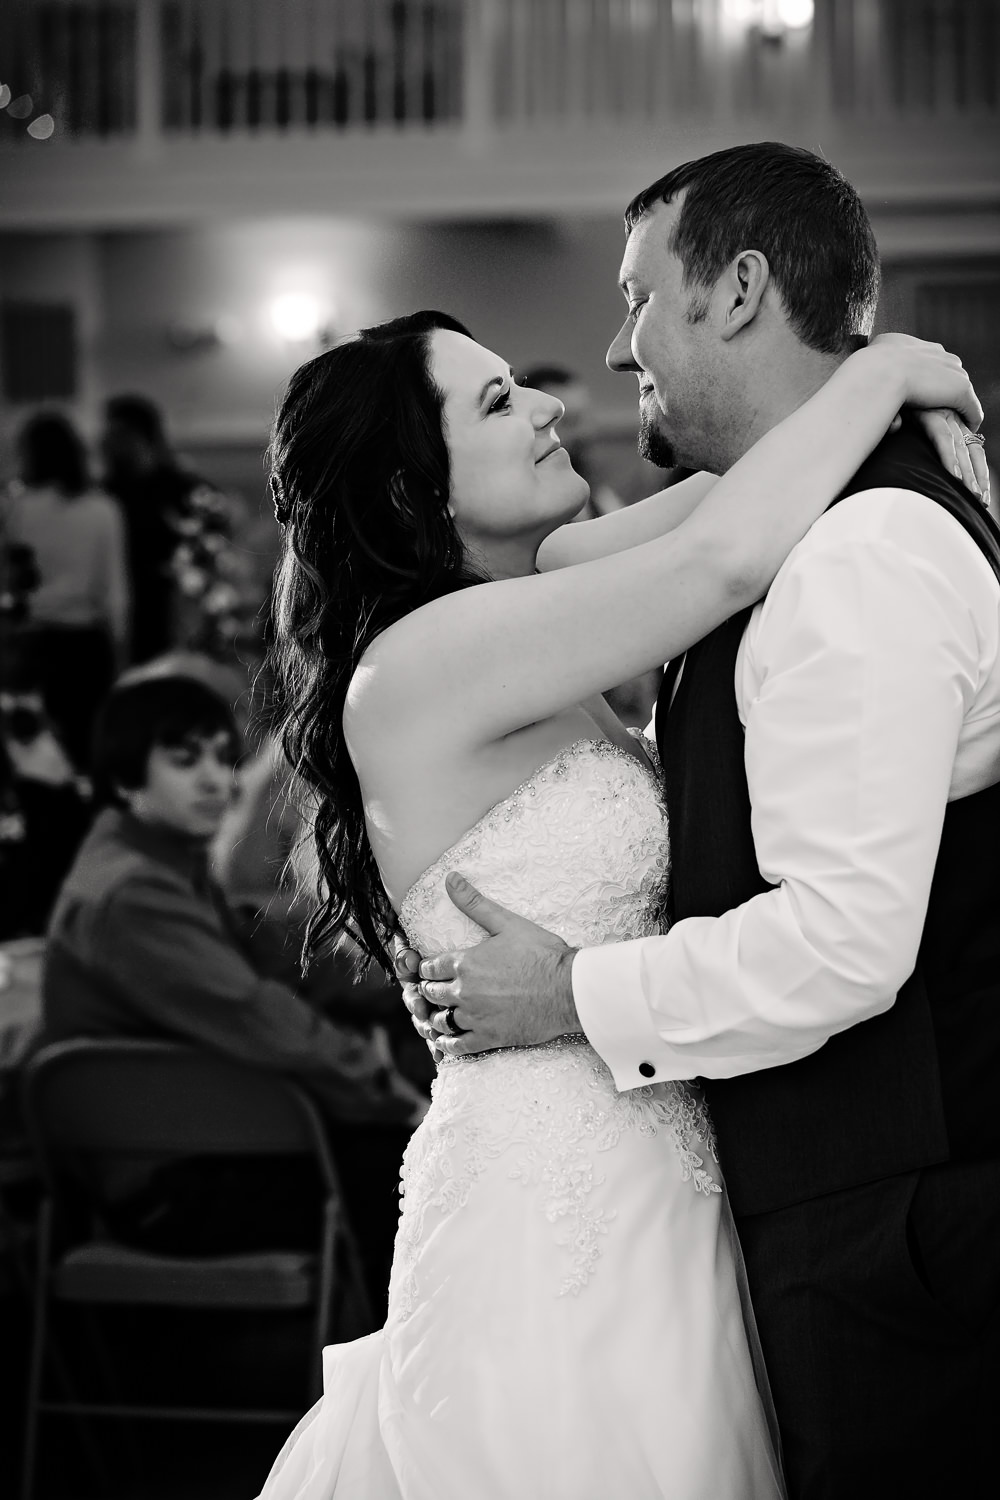 missoula-montana-wedding-heritage-hall-bride-groom-first-dance.jpg